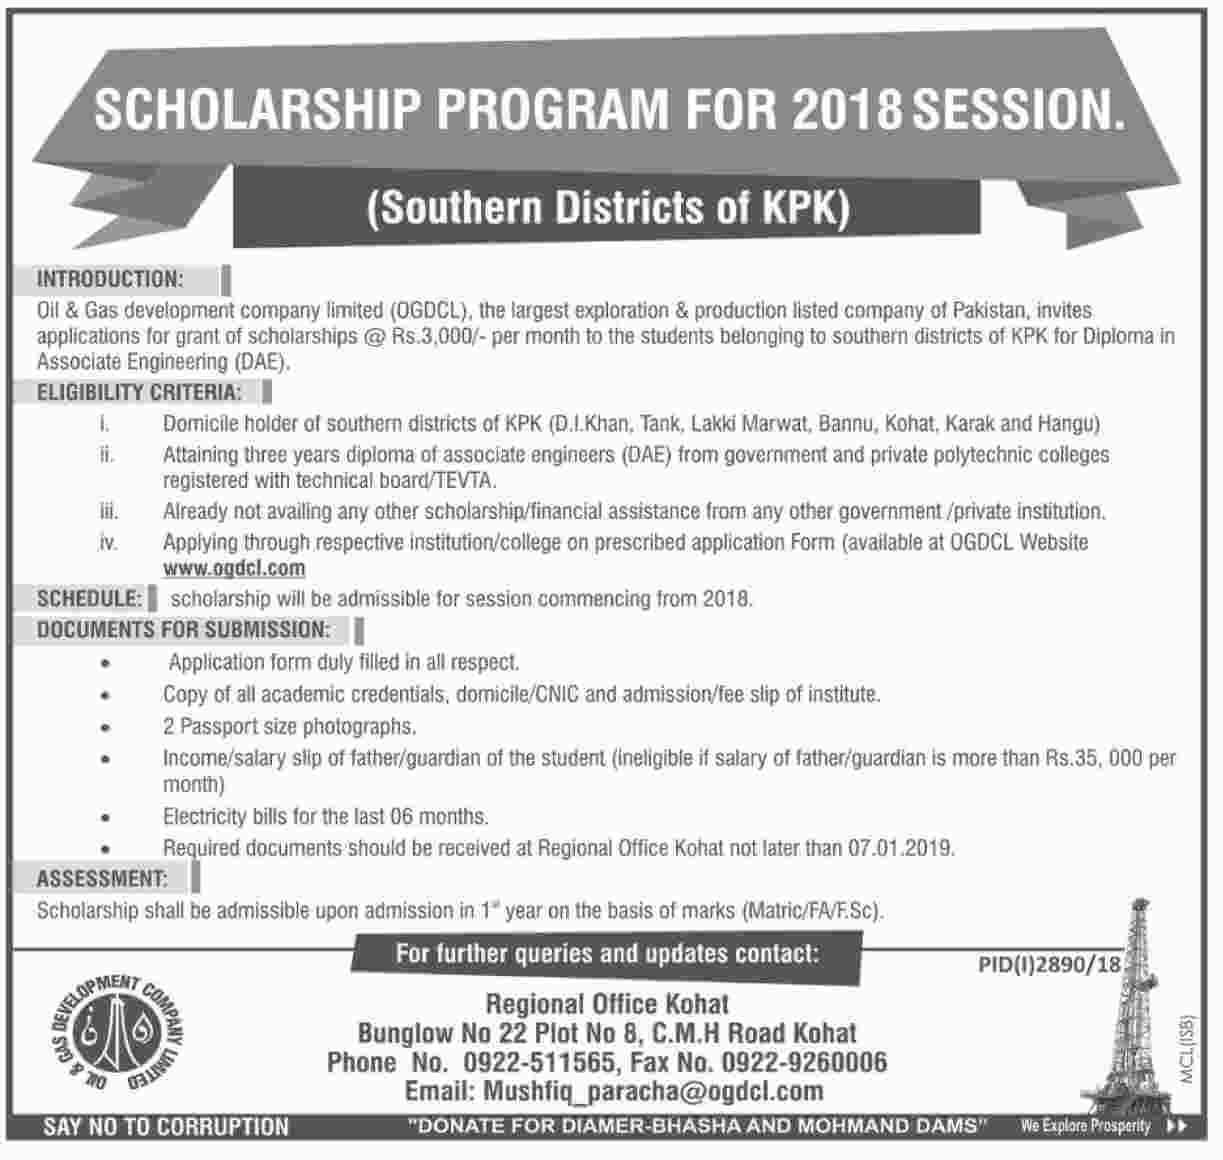 OGDCL Scholarship Programme For Southern Districts KPK 2019  in KPK on December, 2018 | Private